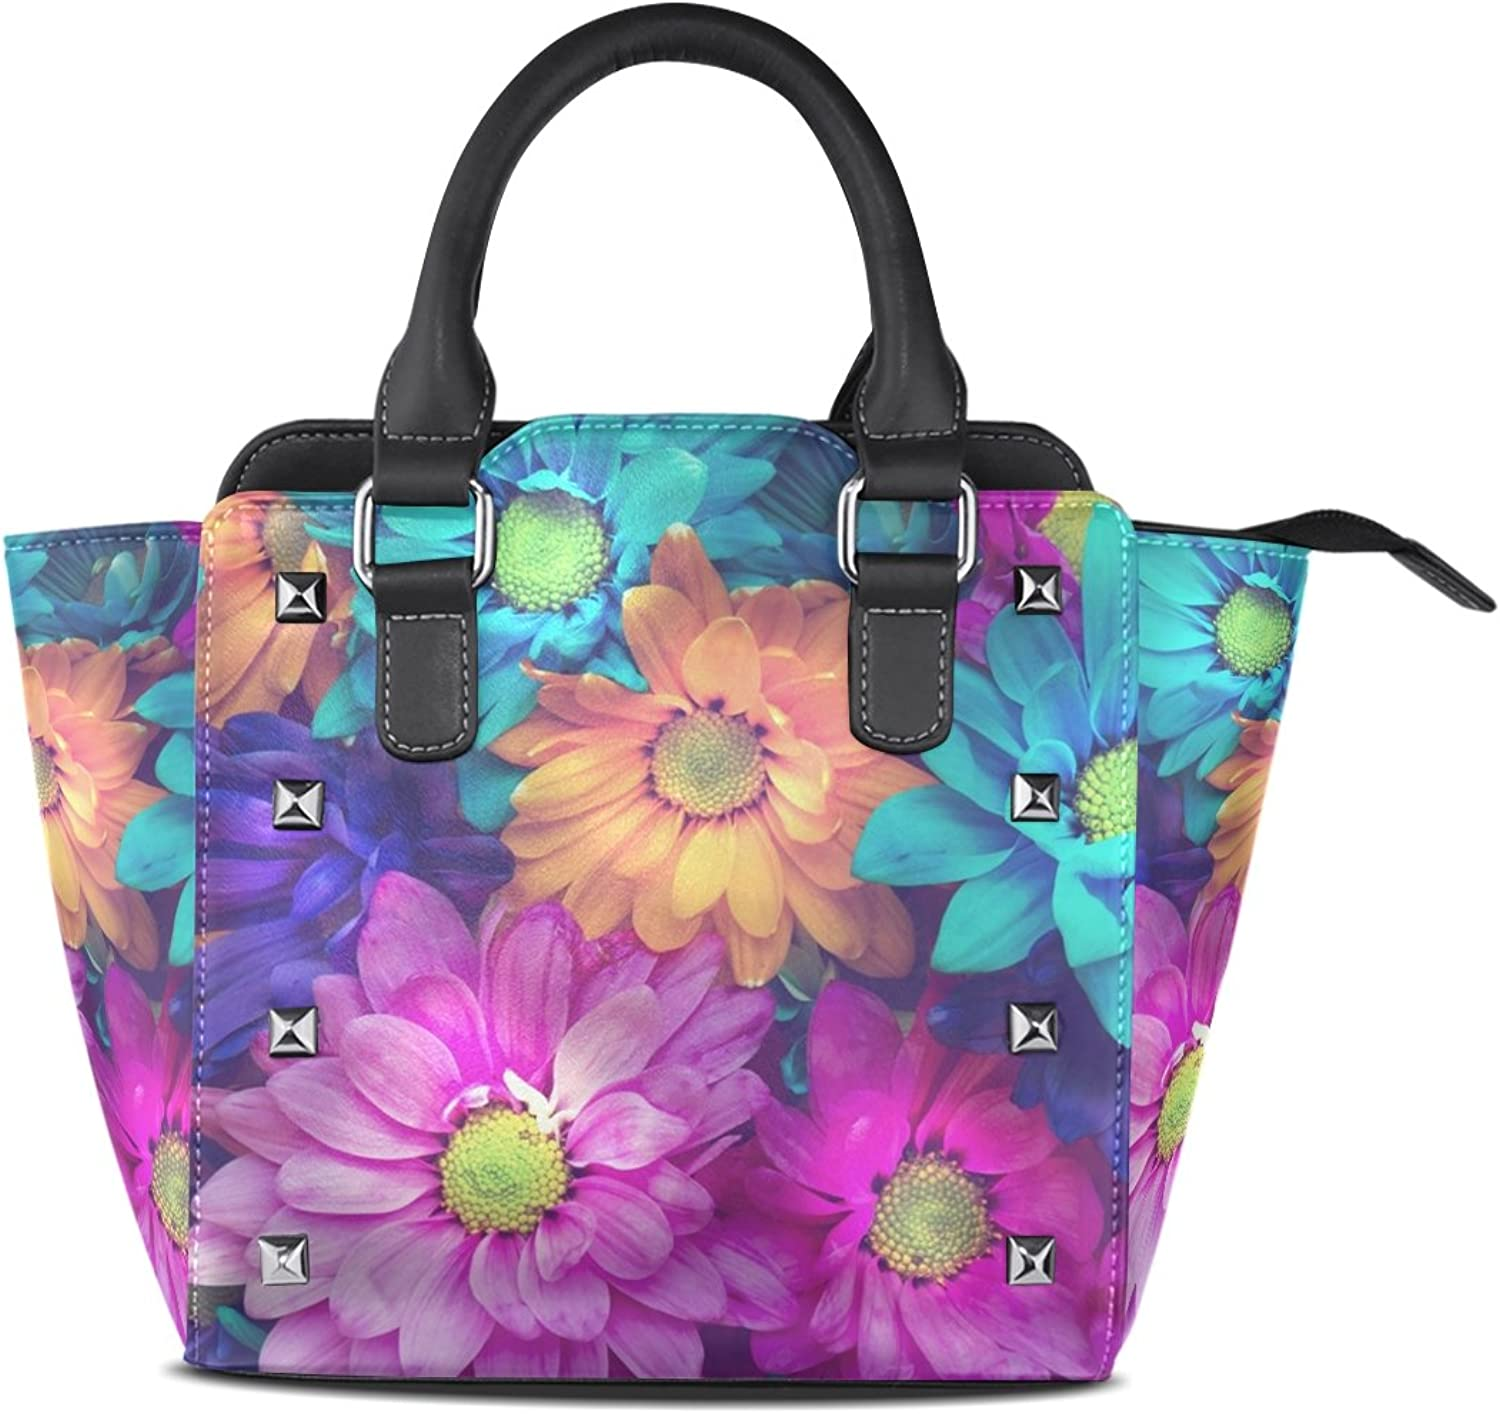 Sunlome colorful Daisy Flowers Print Women's Leather Tote Shoulder Bags Handbags